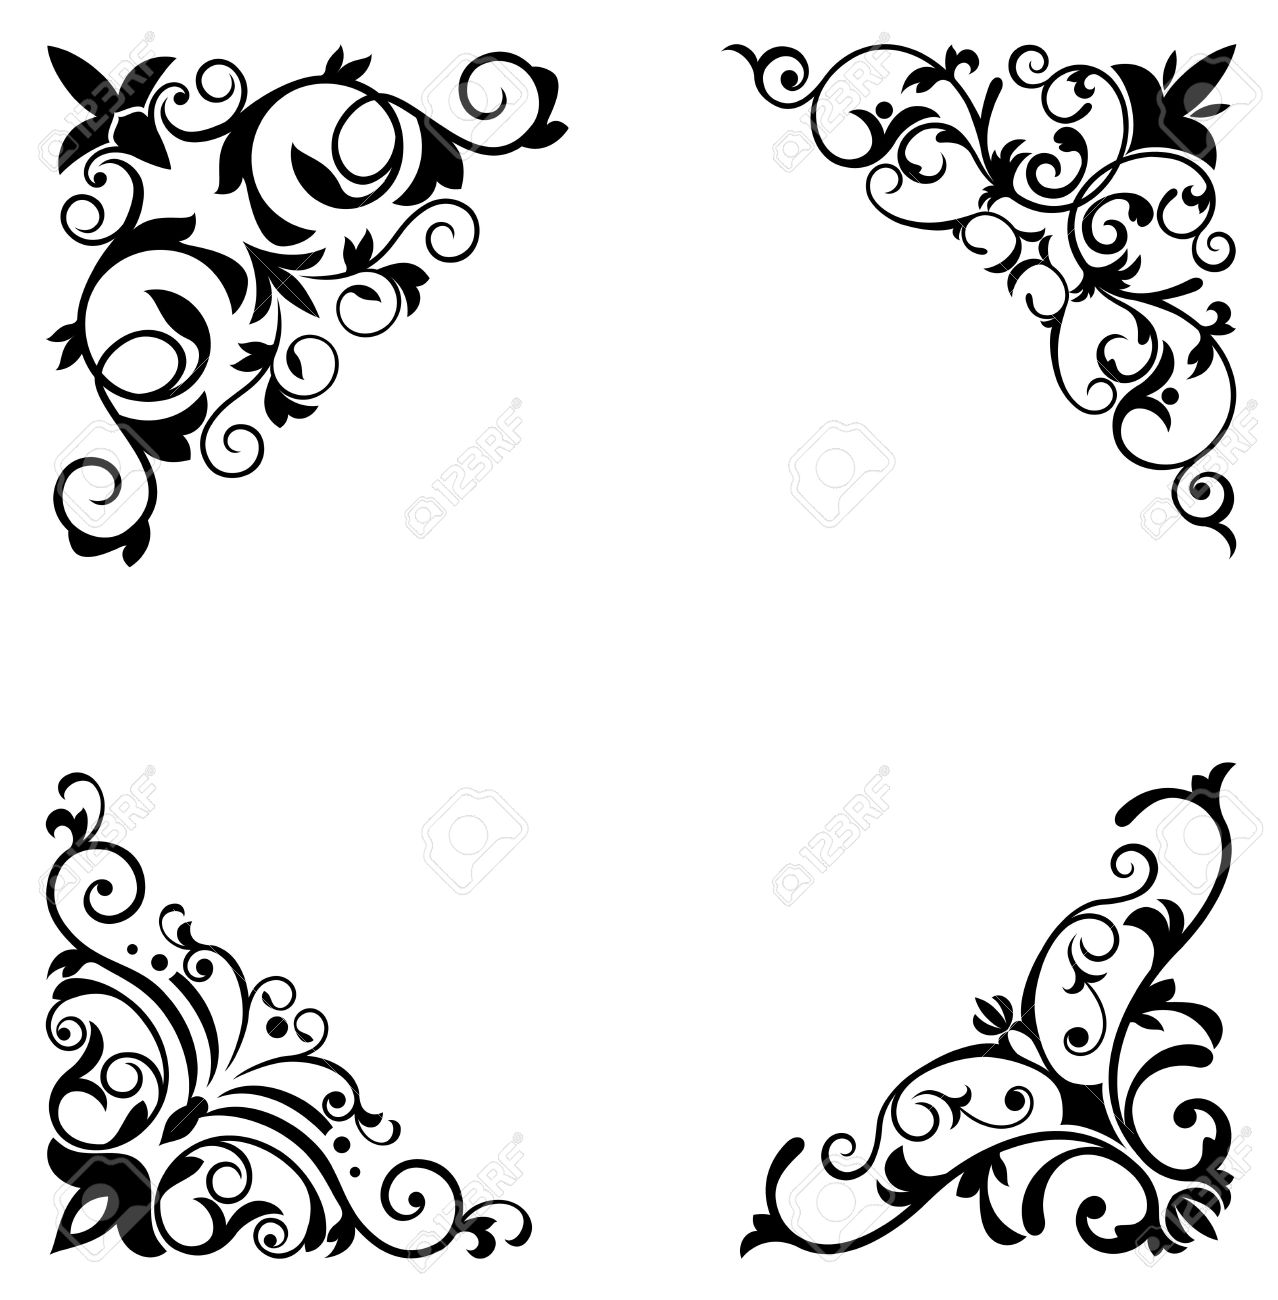 flower patterns and borders for design and ornate royalty free rh 123rf com vector flower patterns background free download vector flower patterns background free download